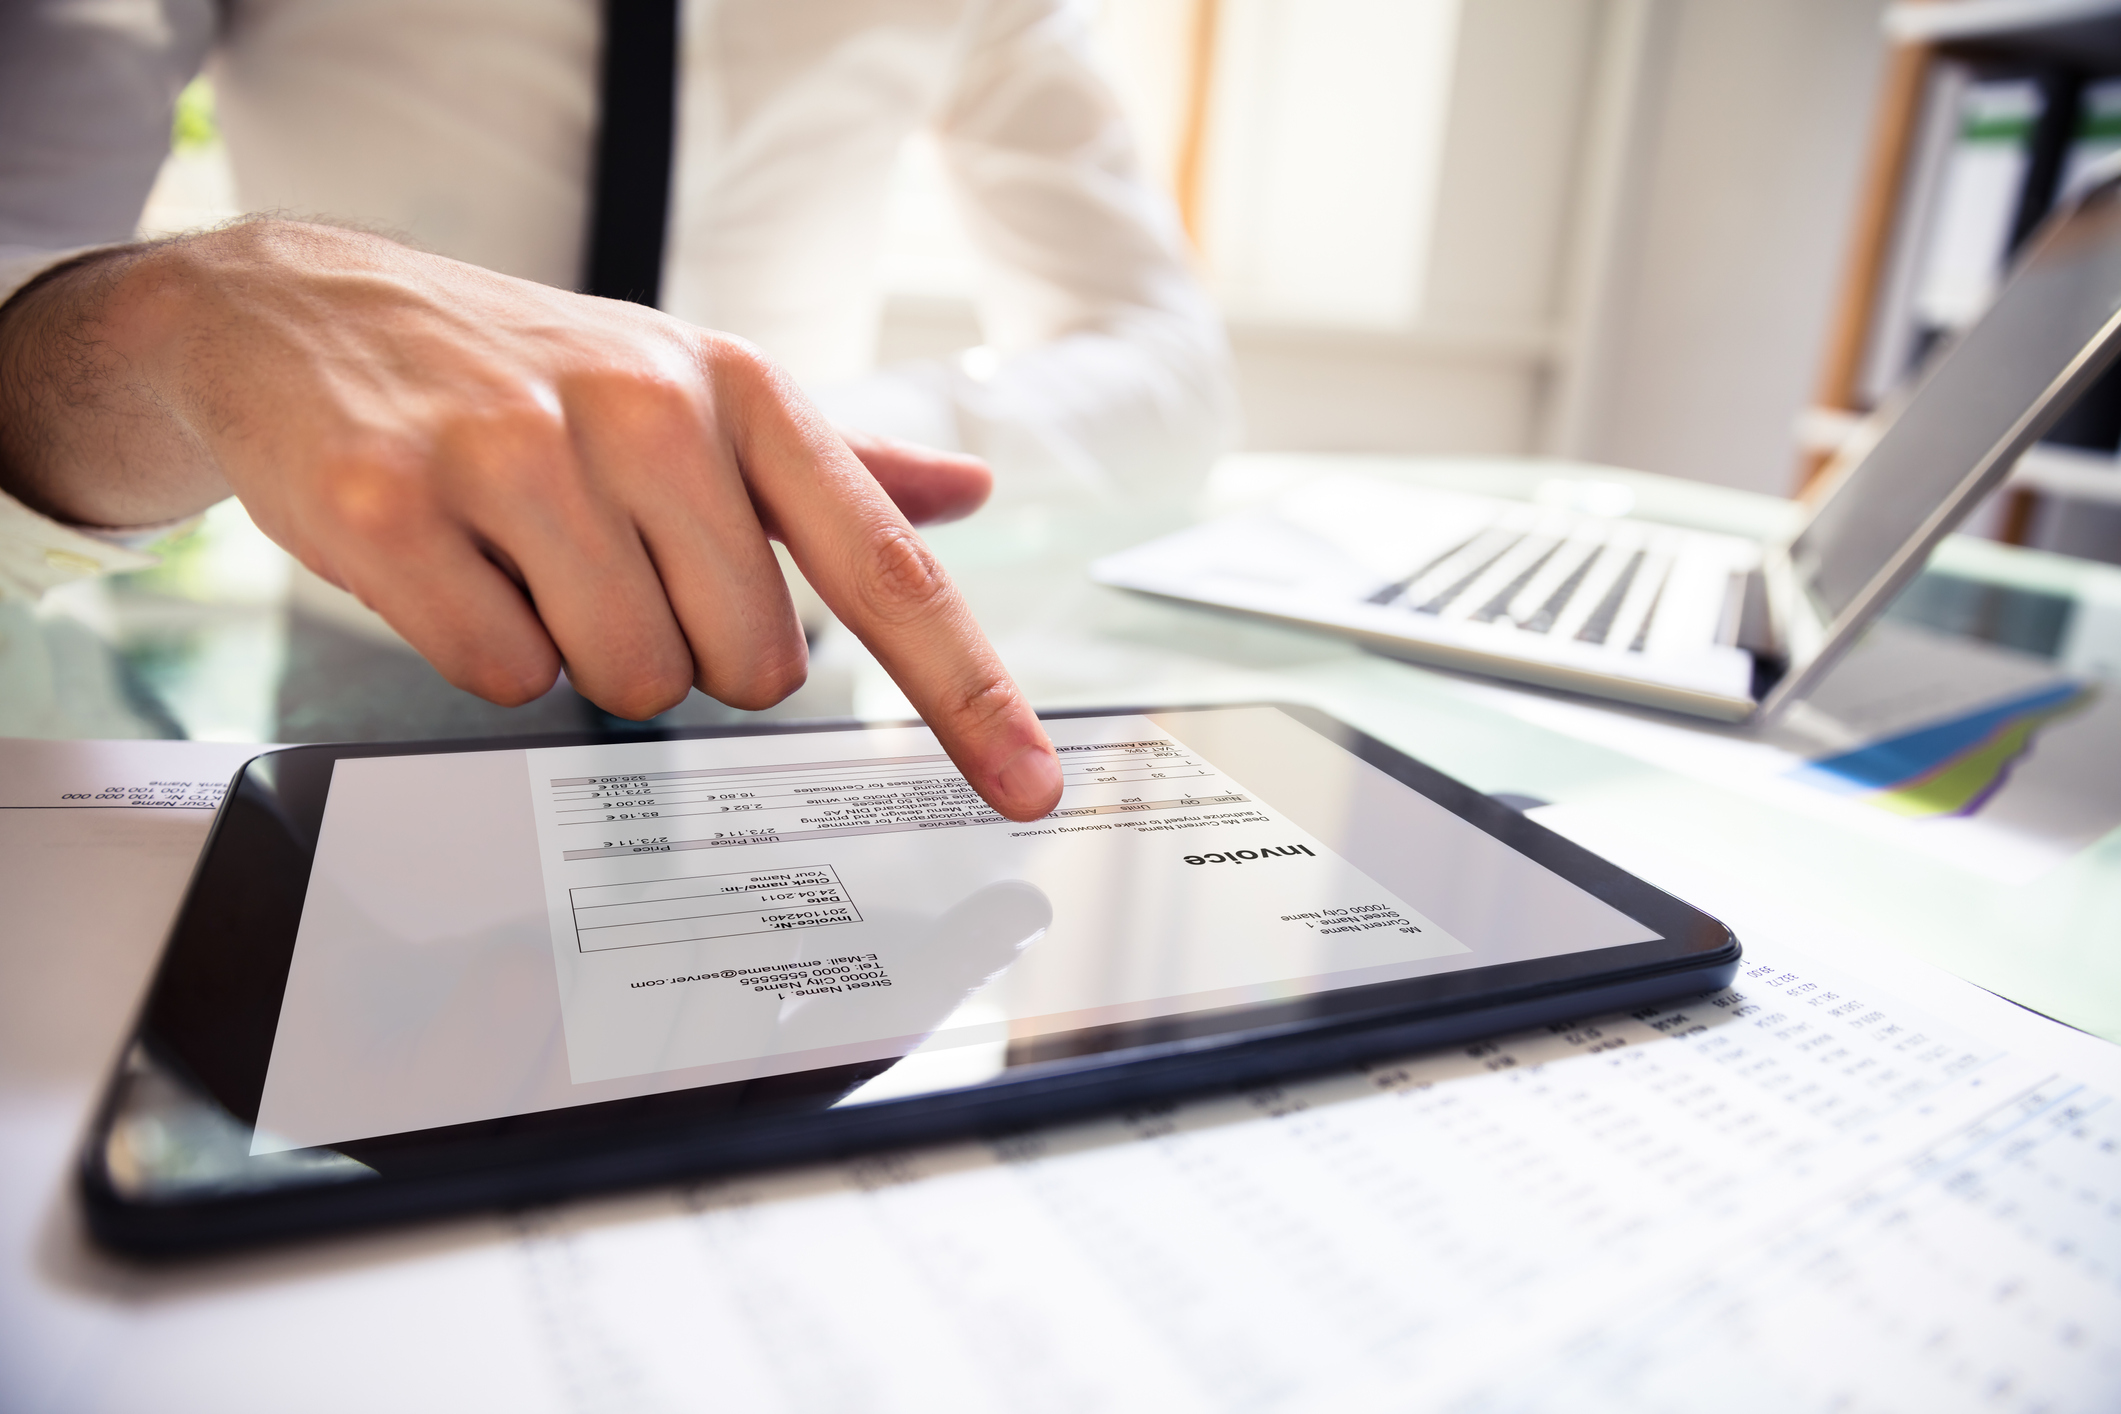 hand using tablet showing invoice document